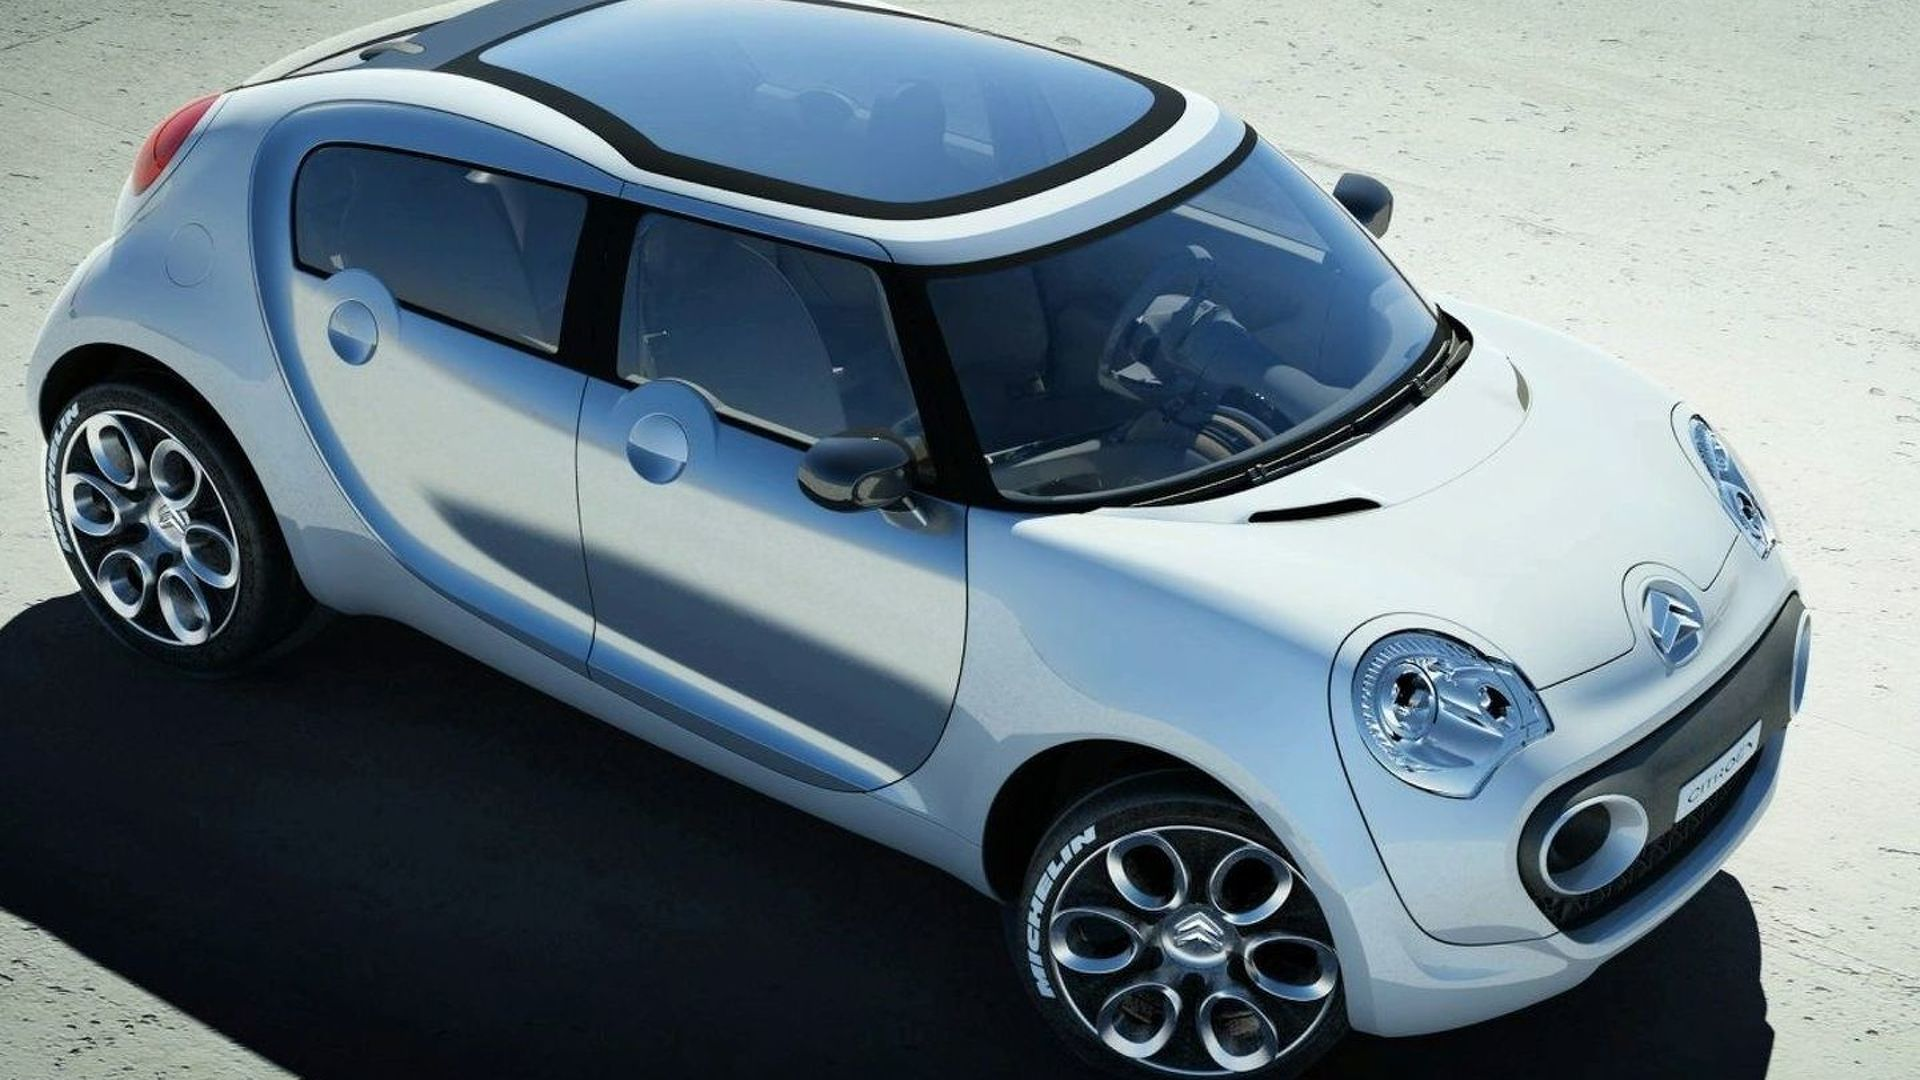 Citroen 2CV successor coming in 2014 - report